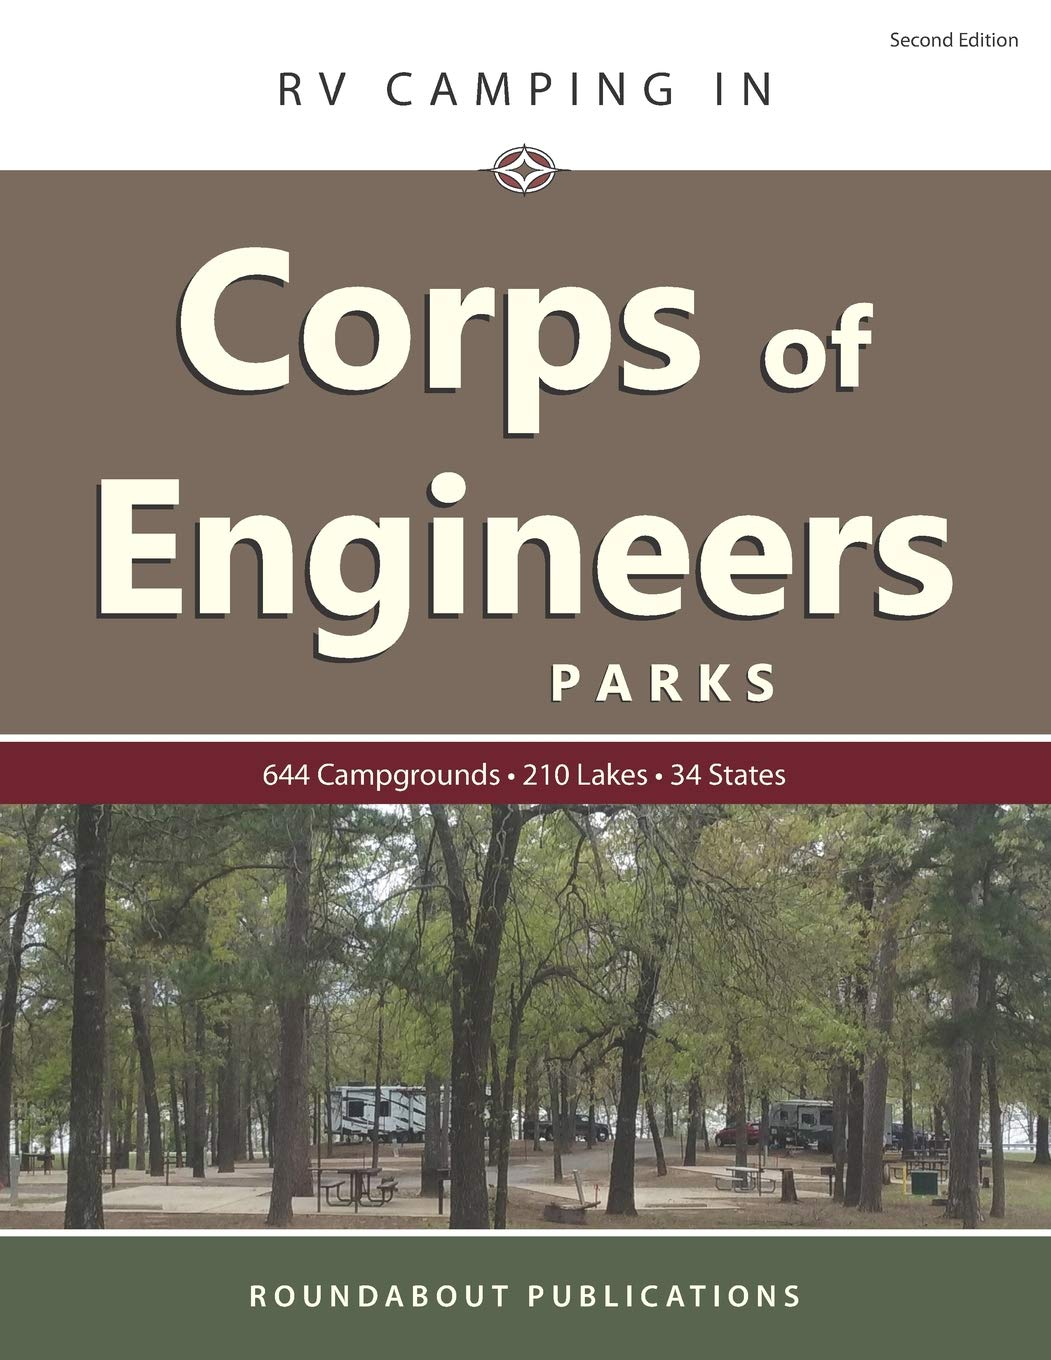 Camping Corps Engineers Parks Campgrounds product image